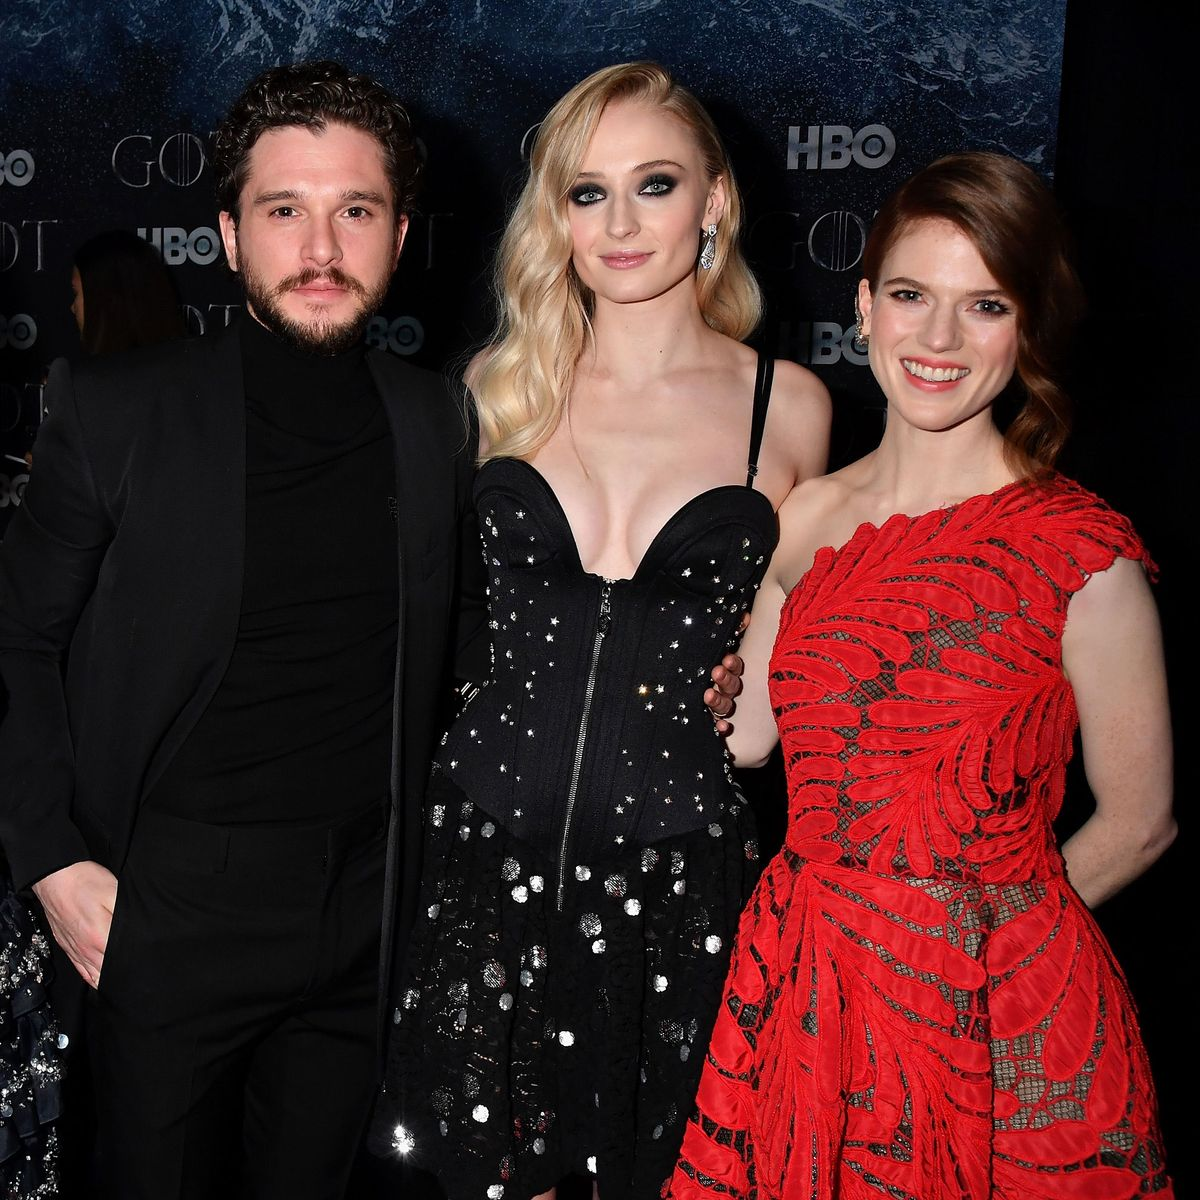 Game of Thrones': What's Next for the Cast?